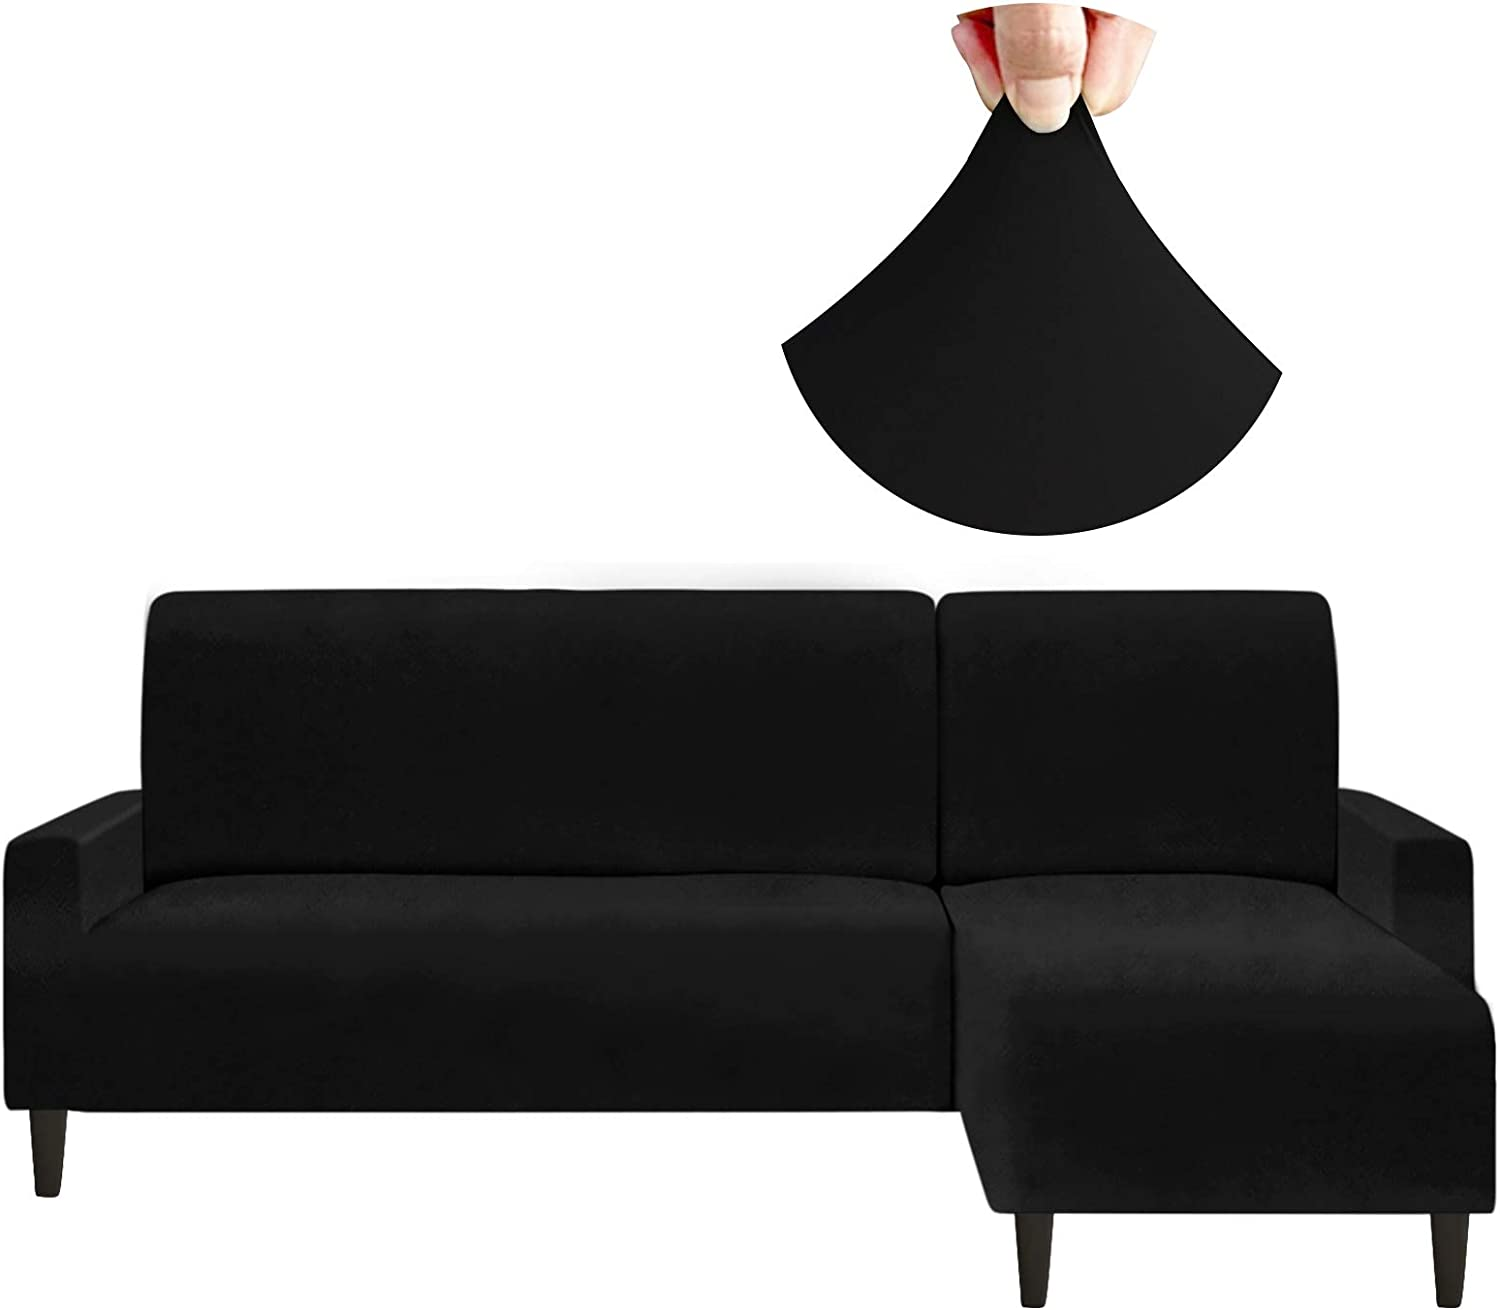 Arfntevss Stretch Sectional Couch Covers Water Resistant 2 Pieces L Shaped Sofa Cover Set Extra Soft Thick L-Shape Slipcovers for Living Room Dogs Proof Non Slip Furniture Protector (Black, Large)